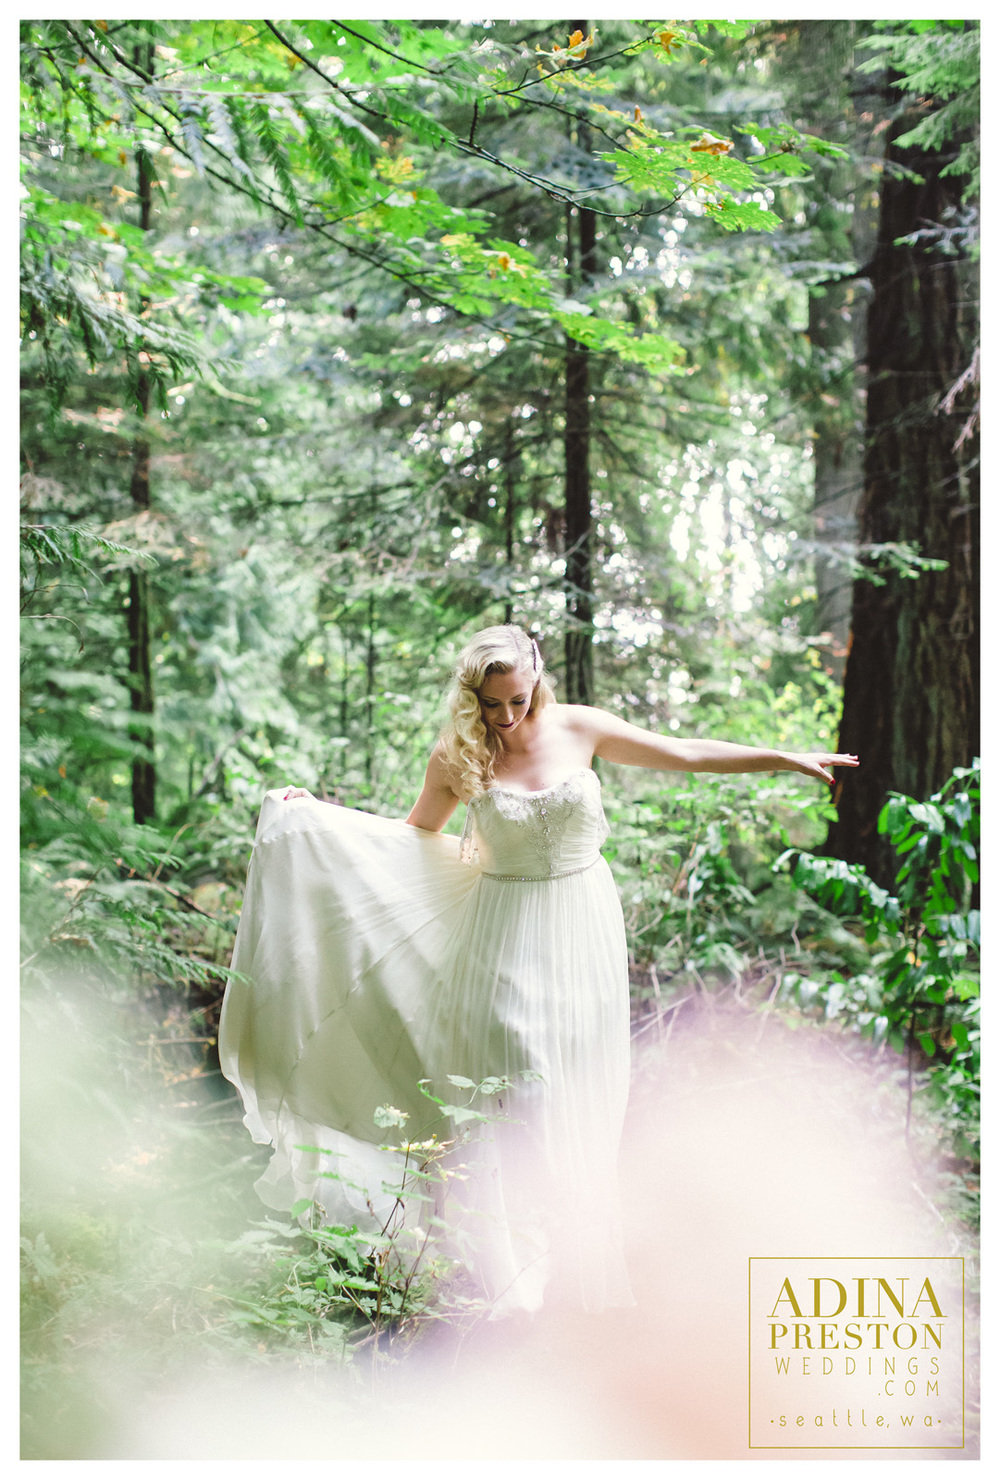 Courtney3_Adina+Preston+Weddings_Seattle+Weddings_Seattle+Wedding+Photographer.jpg